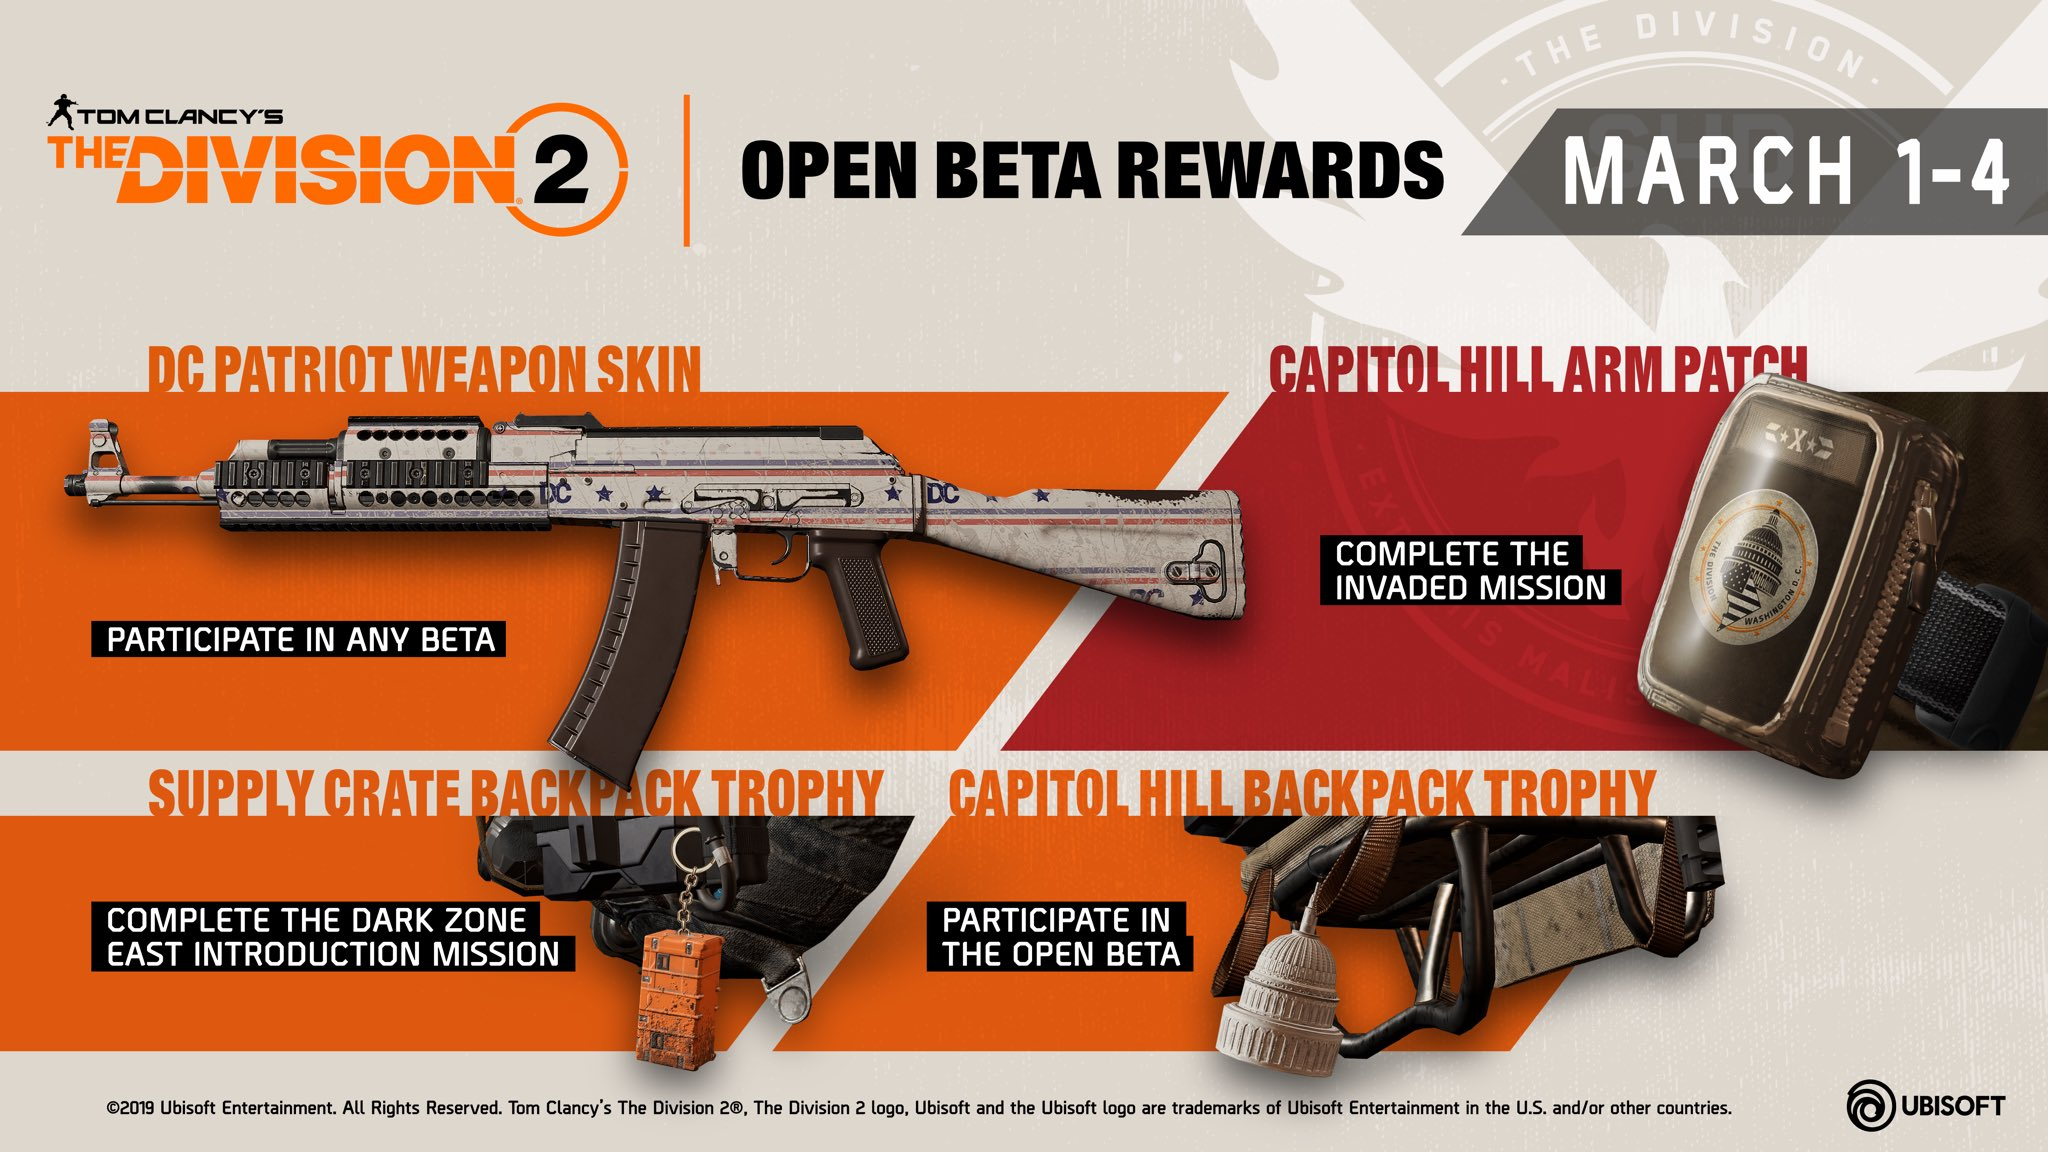 Time to play @TheDivisionGame beta with @M0T3KK! Got to get those beta rewards!! #TheDivision2 https://t.co/mJIXIa5JZu